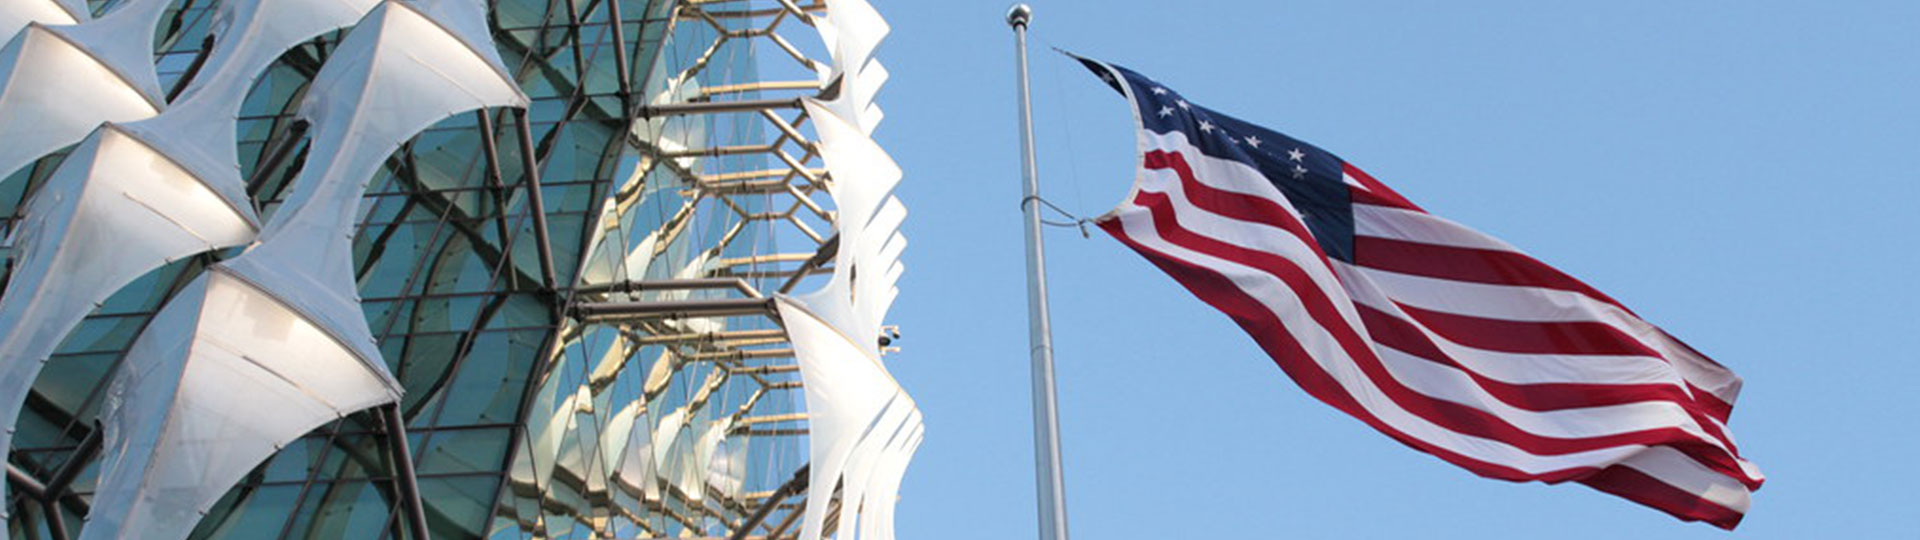 We'll provide your J1 visa in order for you to work in America.